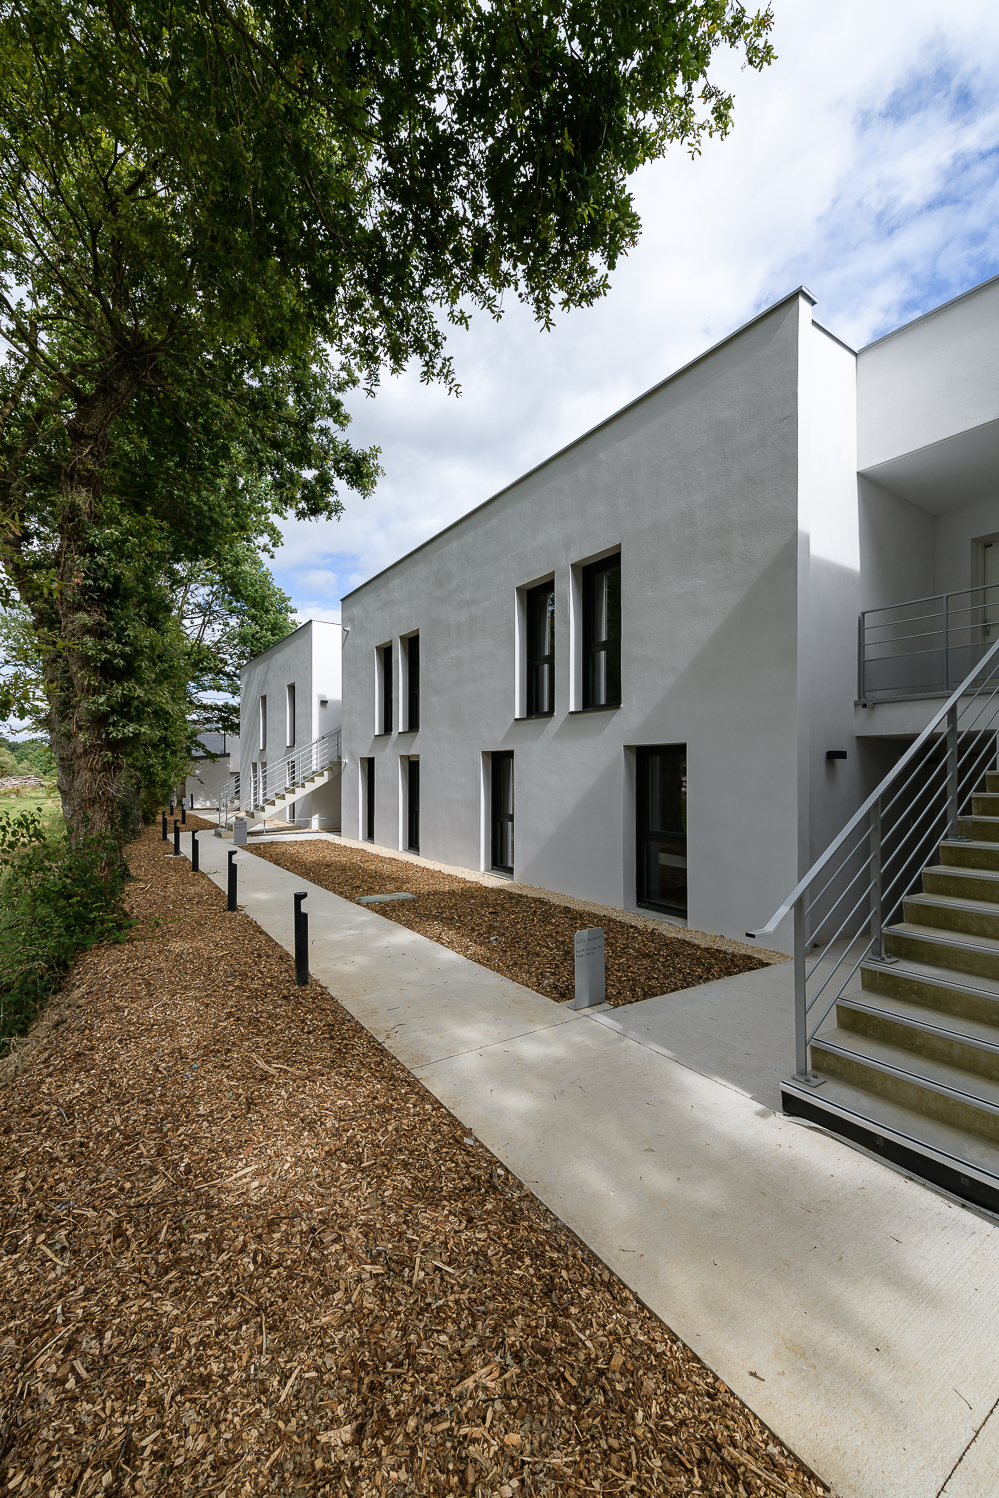 photographe d'architecture ©INTERVALphoto : O+P architectes, logements, Cintré (35)